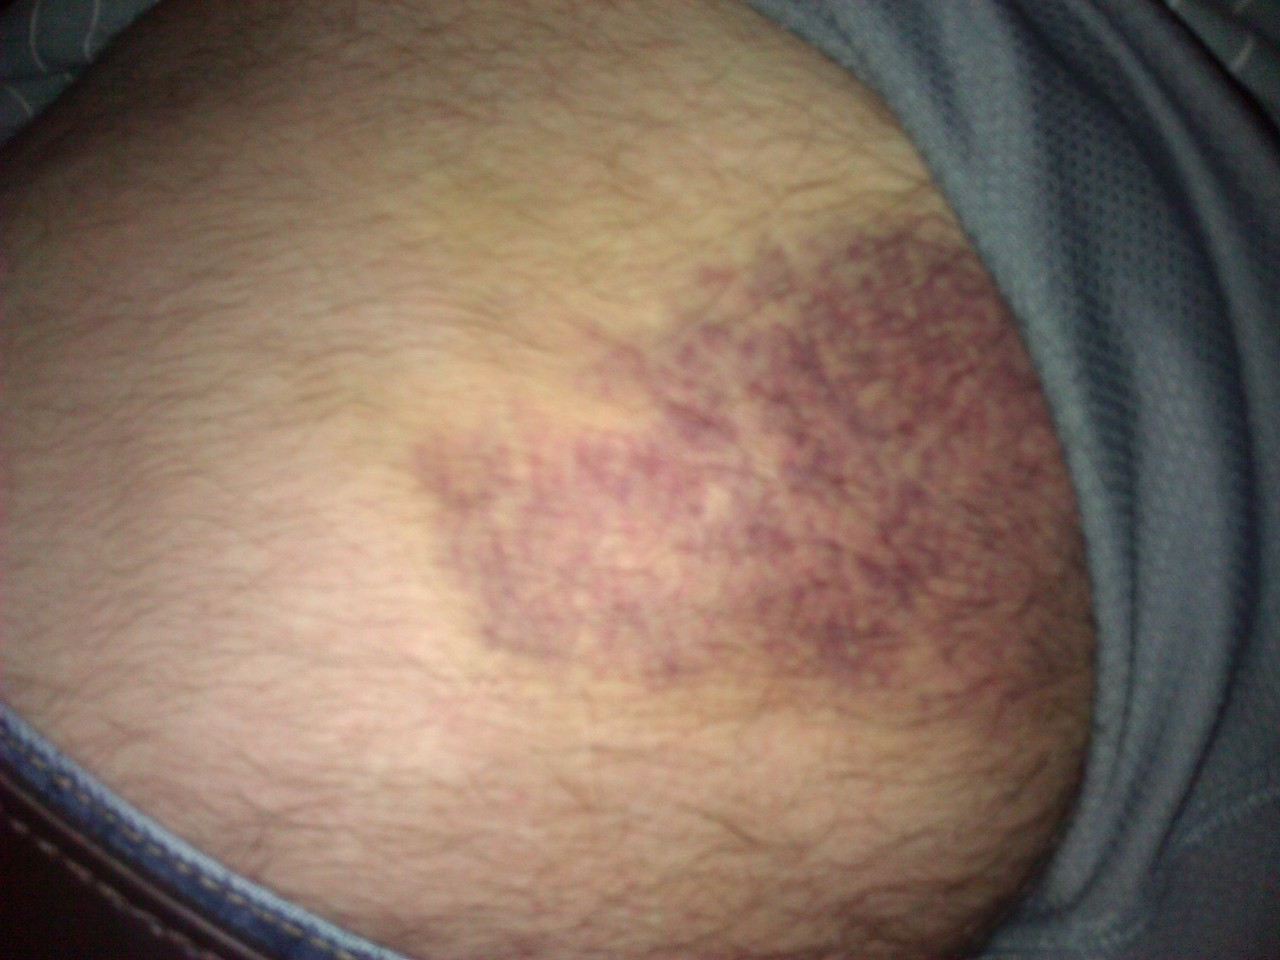 And the matching bruise on my hip. This is only part of the bruise, but since this site is PG-13, I cannot show the full bruise.